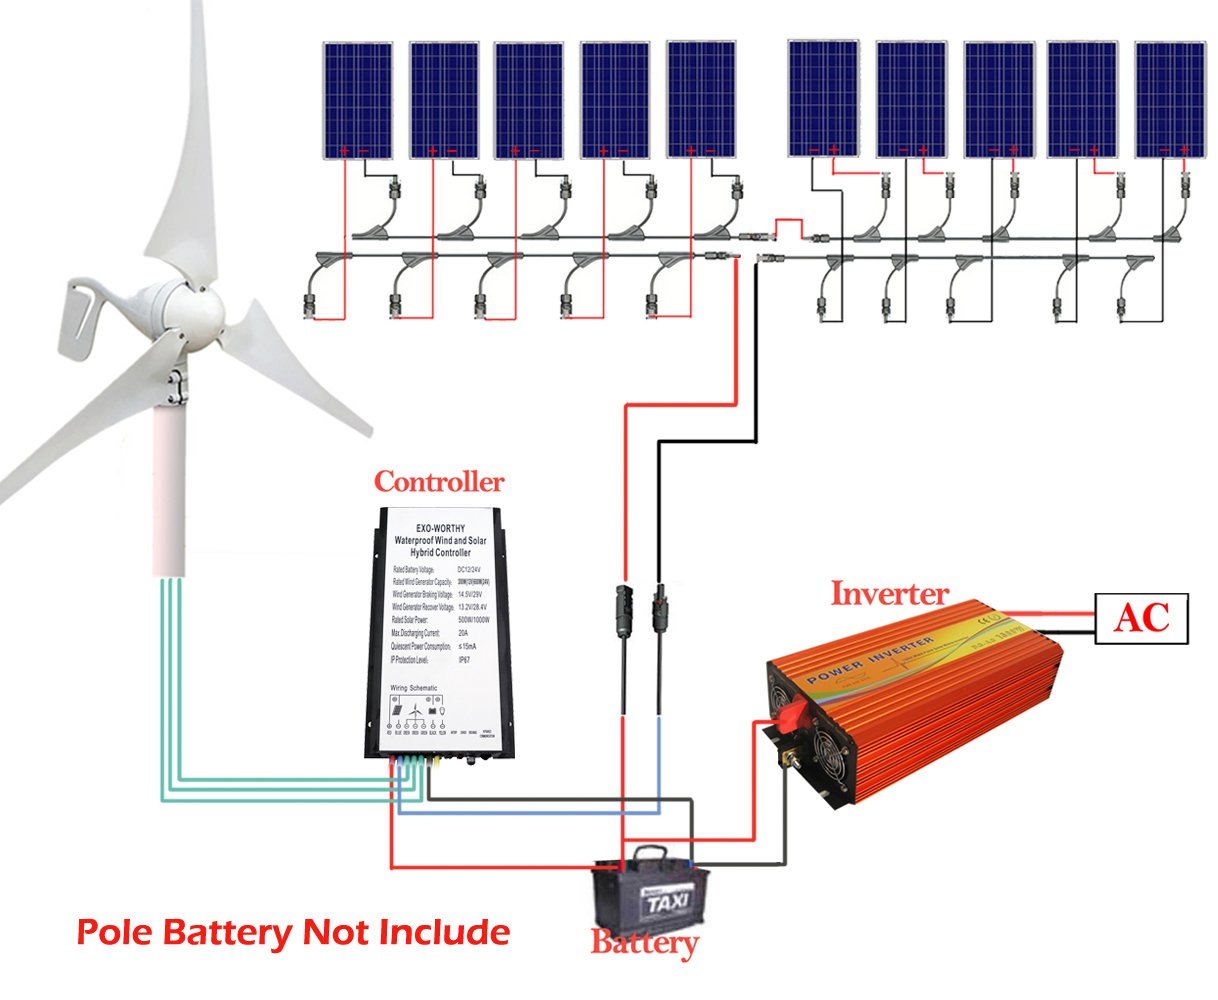 Eco Worthy 1400w Off Grid Solar Wind System Charging Kits 400 Load Cell Wiring Diagram Panel Uk Watt Turbine Generator With Hybird Charge Controller 10pcs 100w Poly Panels